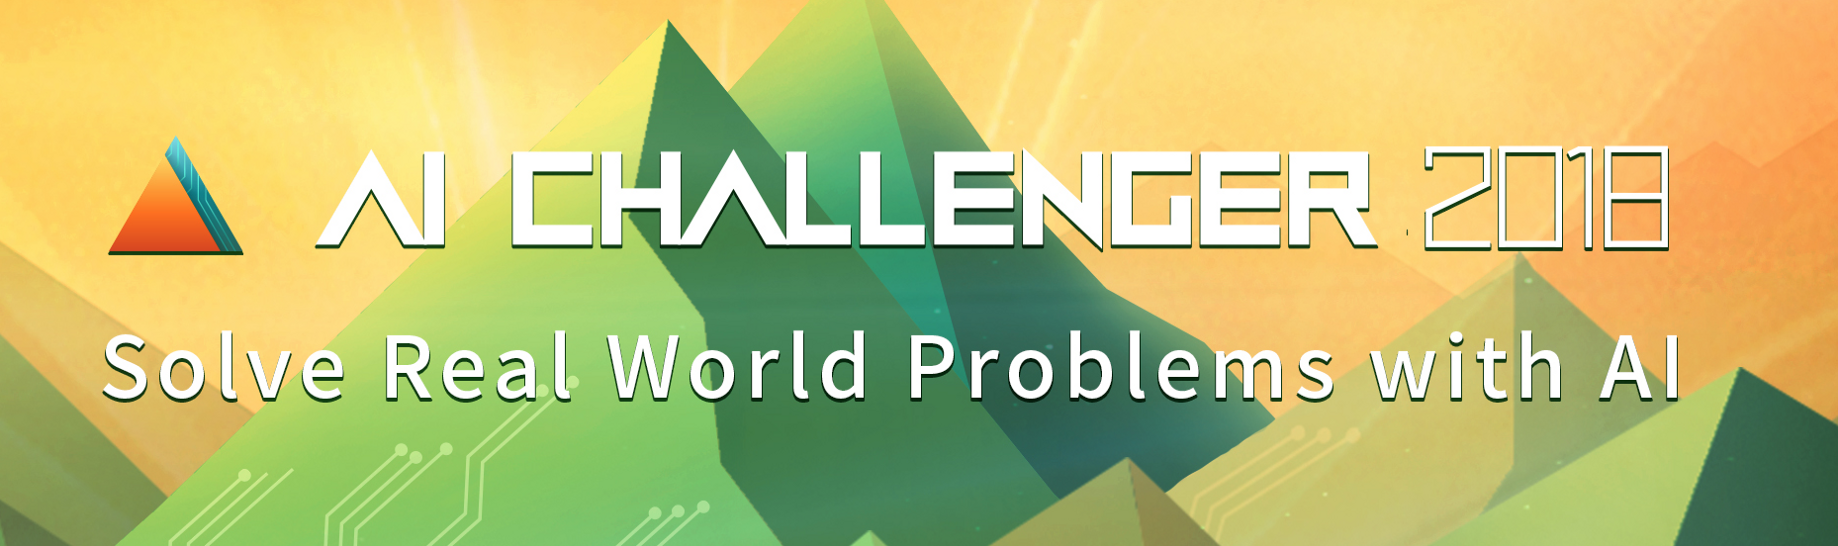 """Problem solving with """"AI Challenger global AI contest"""""""